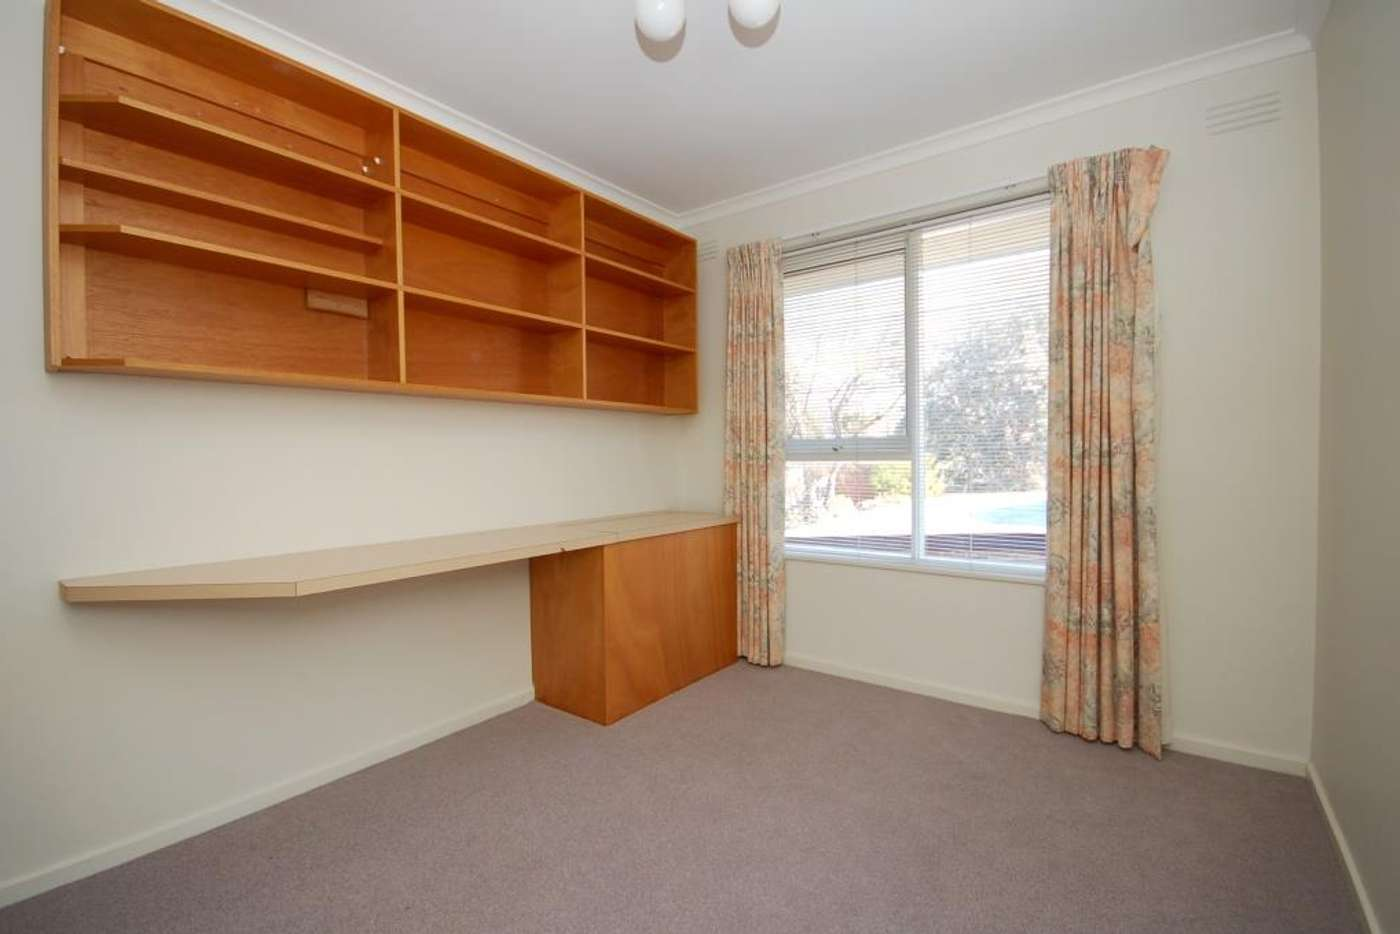 Sixth view of Homely apartment listing, 8/35 Trevelyan Street, Elsternwick VIC 3185